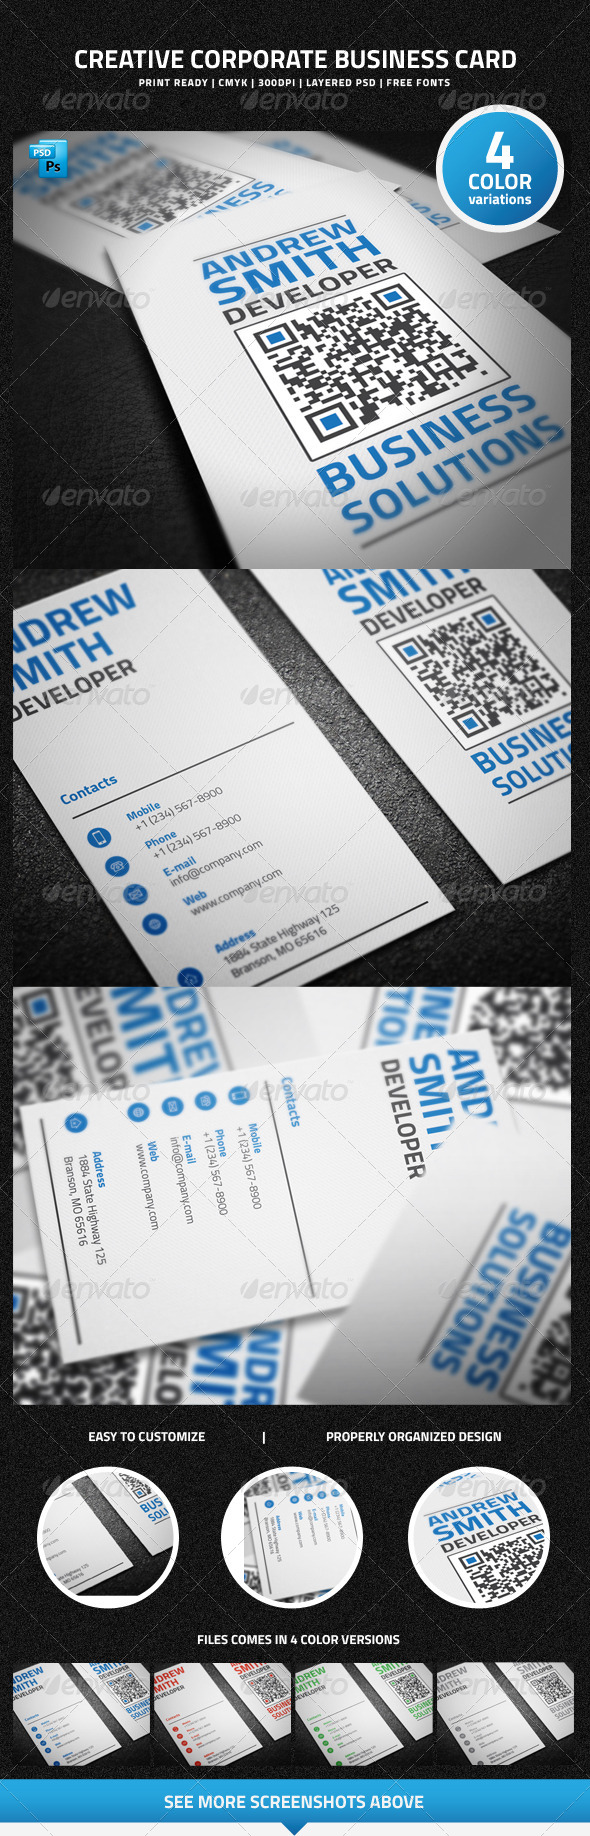 GraphicRiver Creative Corporate Business Card 6377134